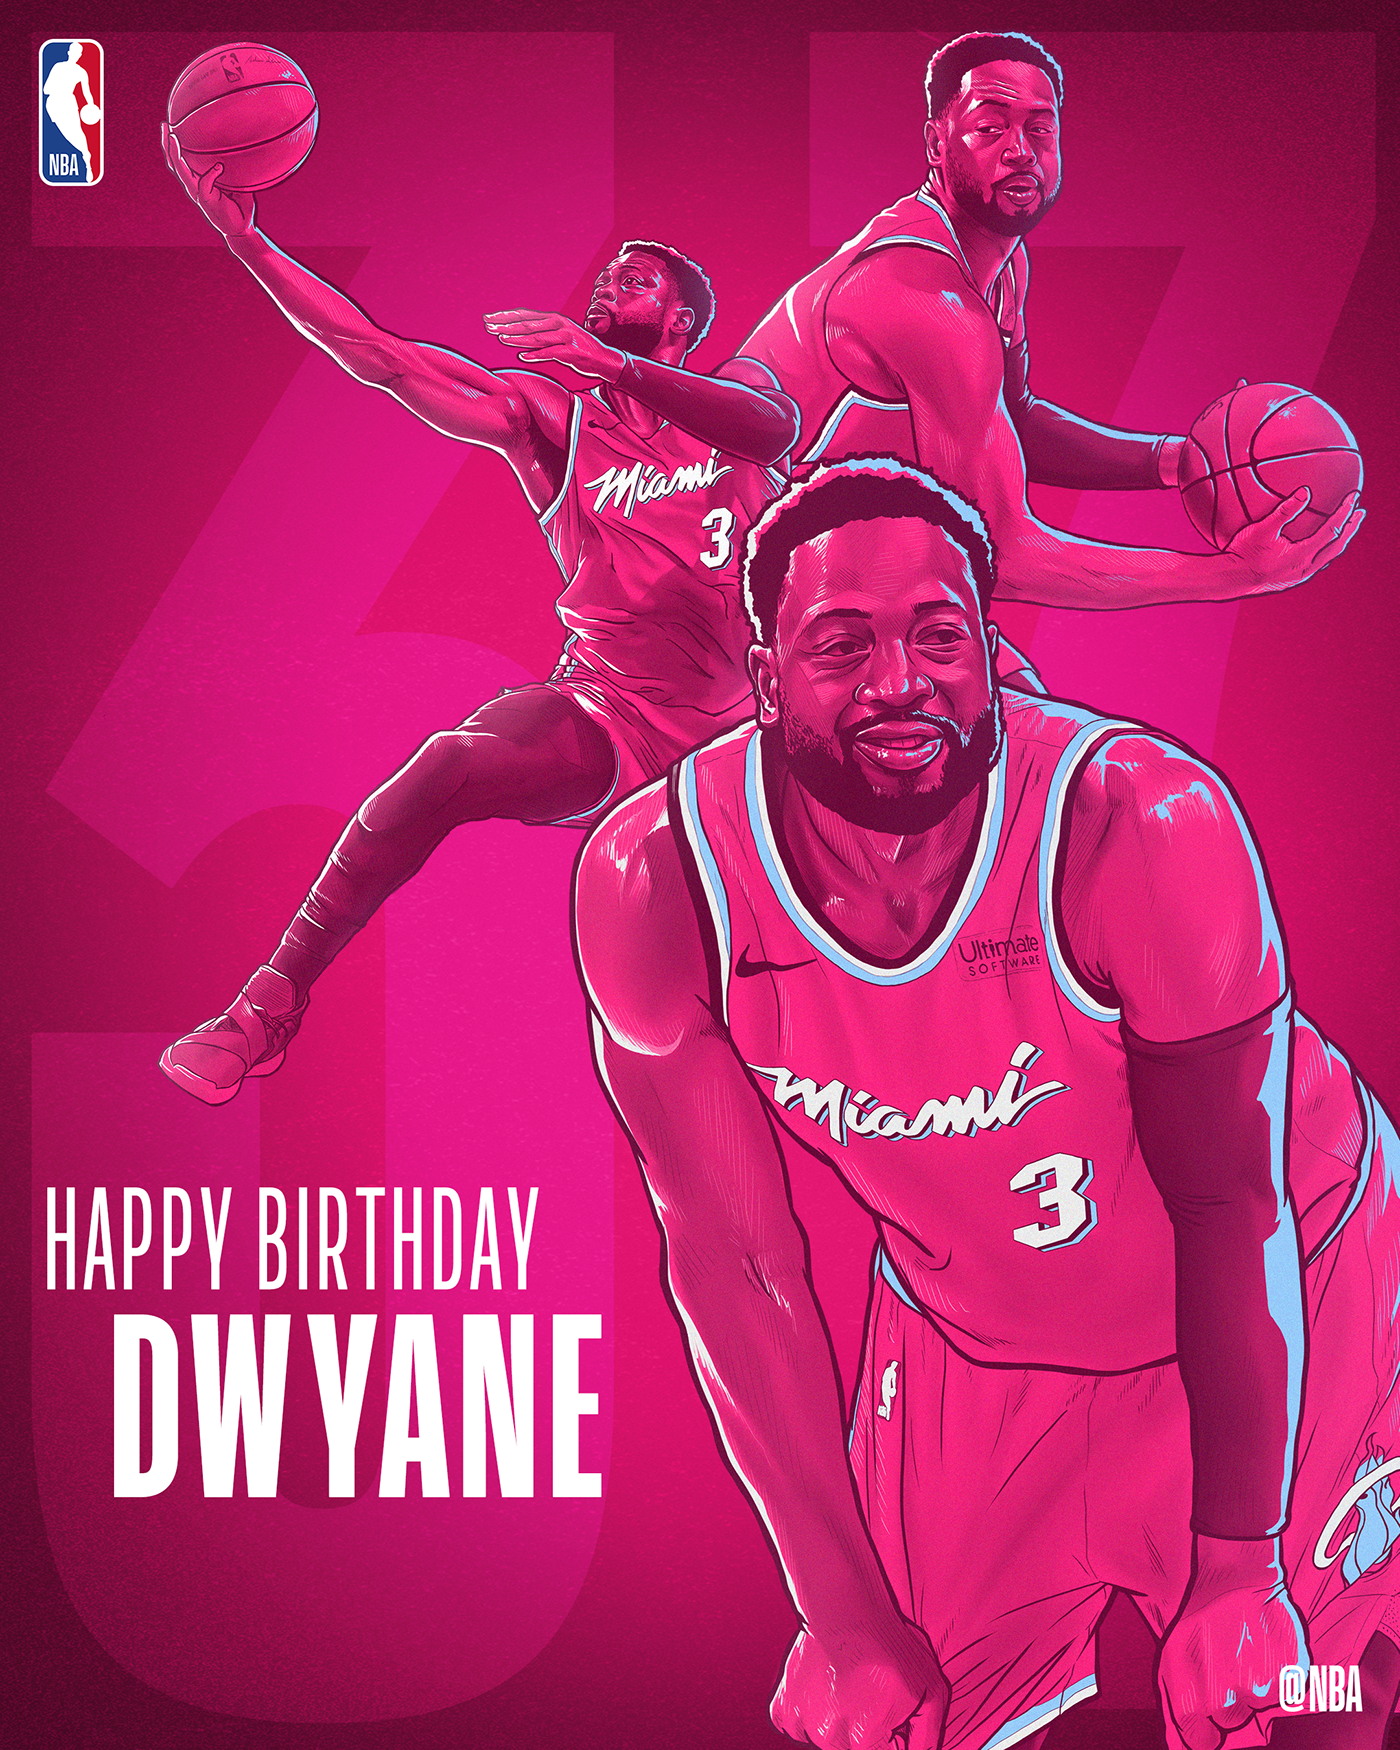 Check Out This Behance Project Nba Dwyane Wade Bday Illustration Miami Vice Edition Https Www Behance Net Gallery 746529 Dwyane Wade Nba Nba Miami Heat